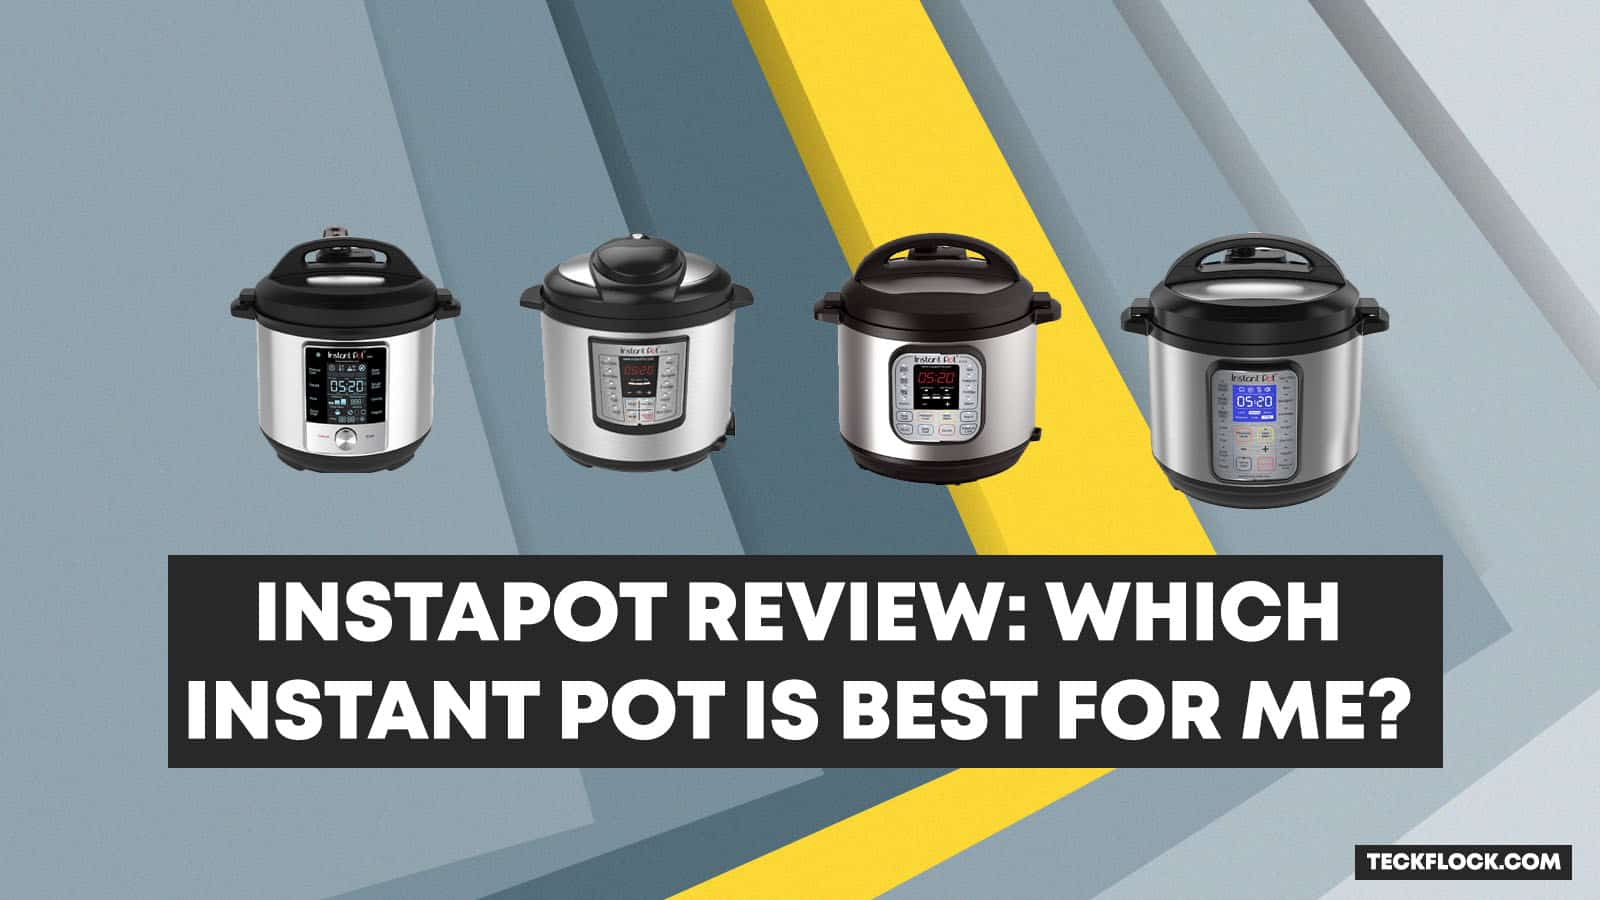 Instapot Review